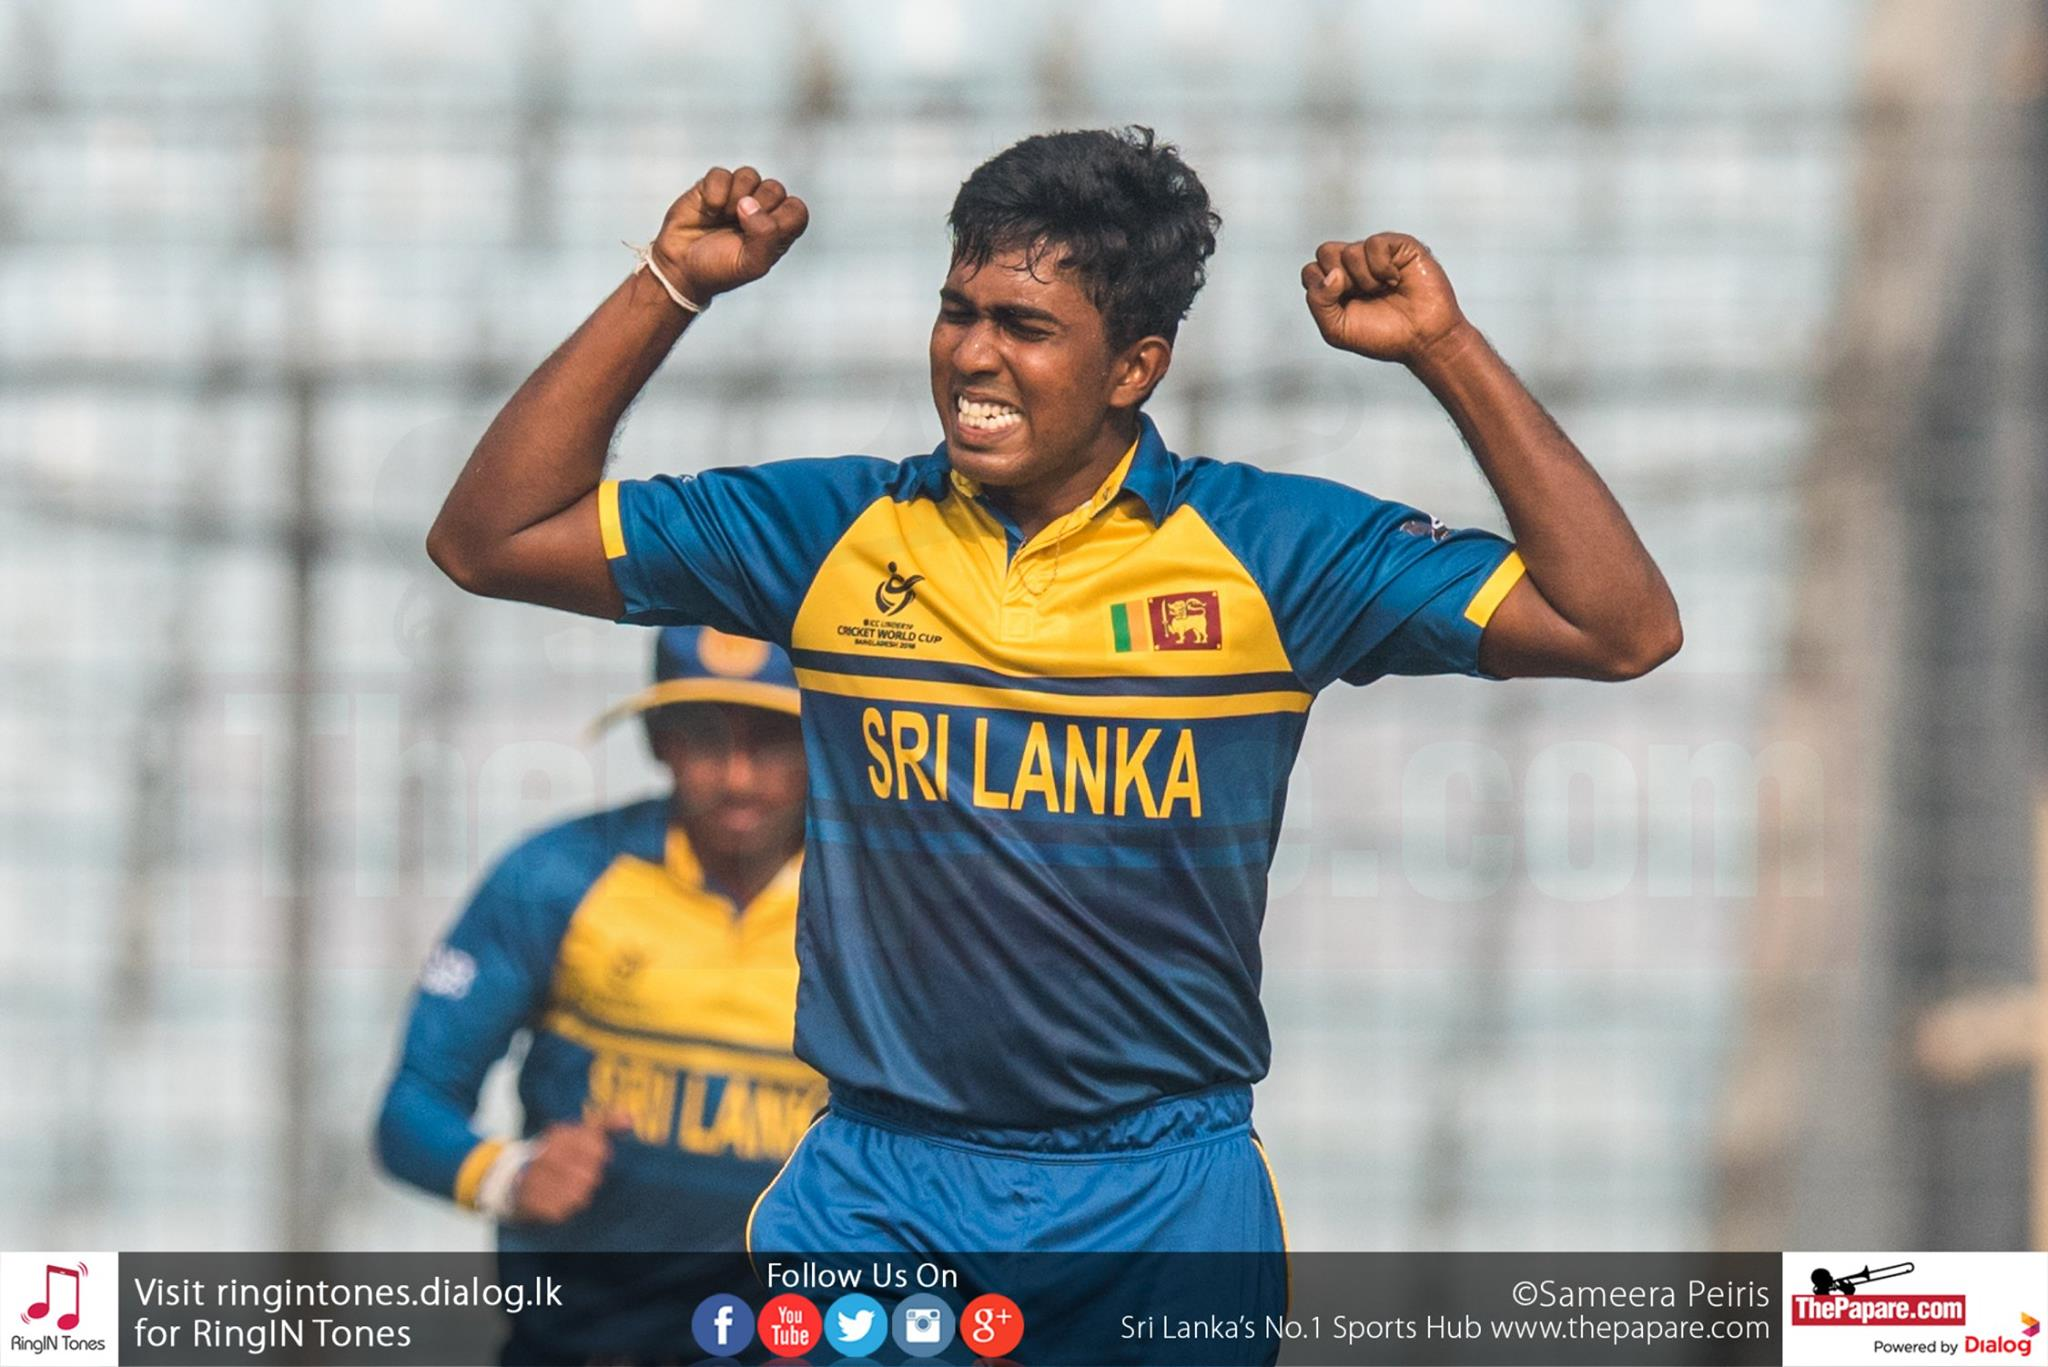 Sri Lanka U19 vs England U19 - Quarter Finals